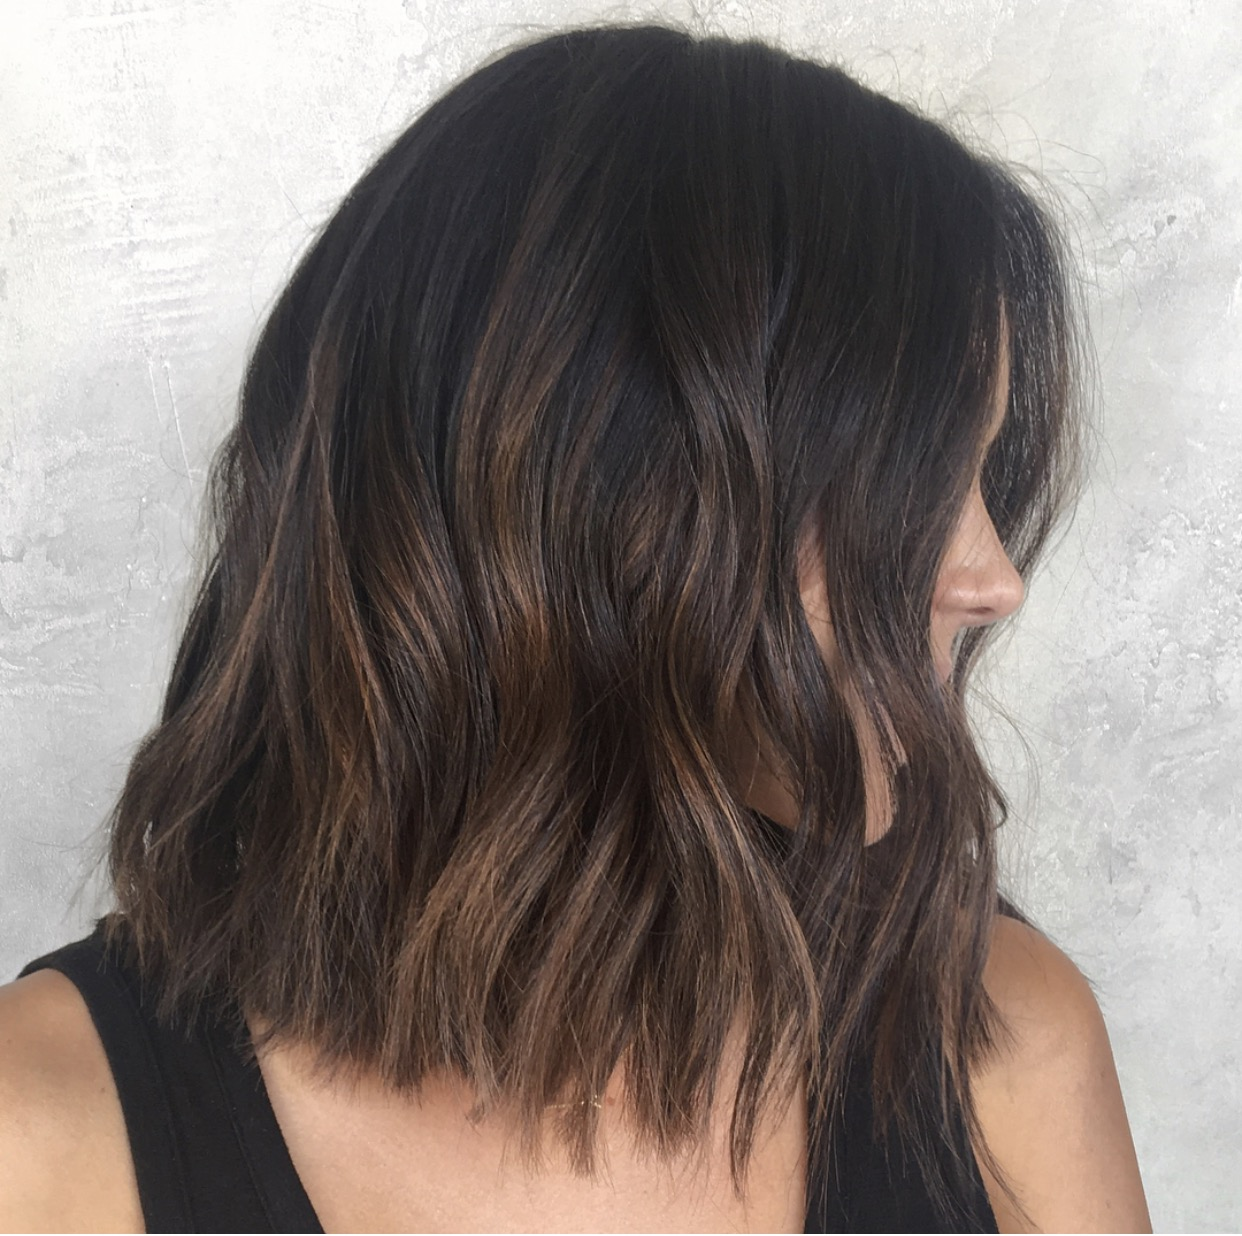 Ashley Clark Blog Qa About My Most Recent Hairstyle